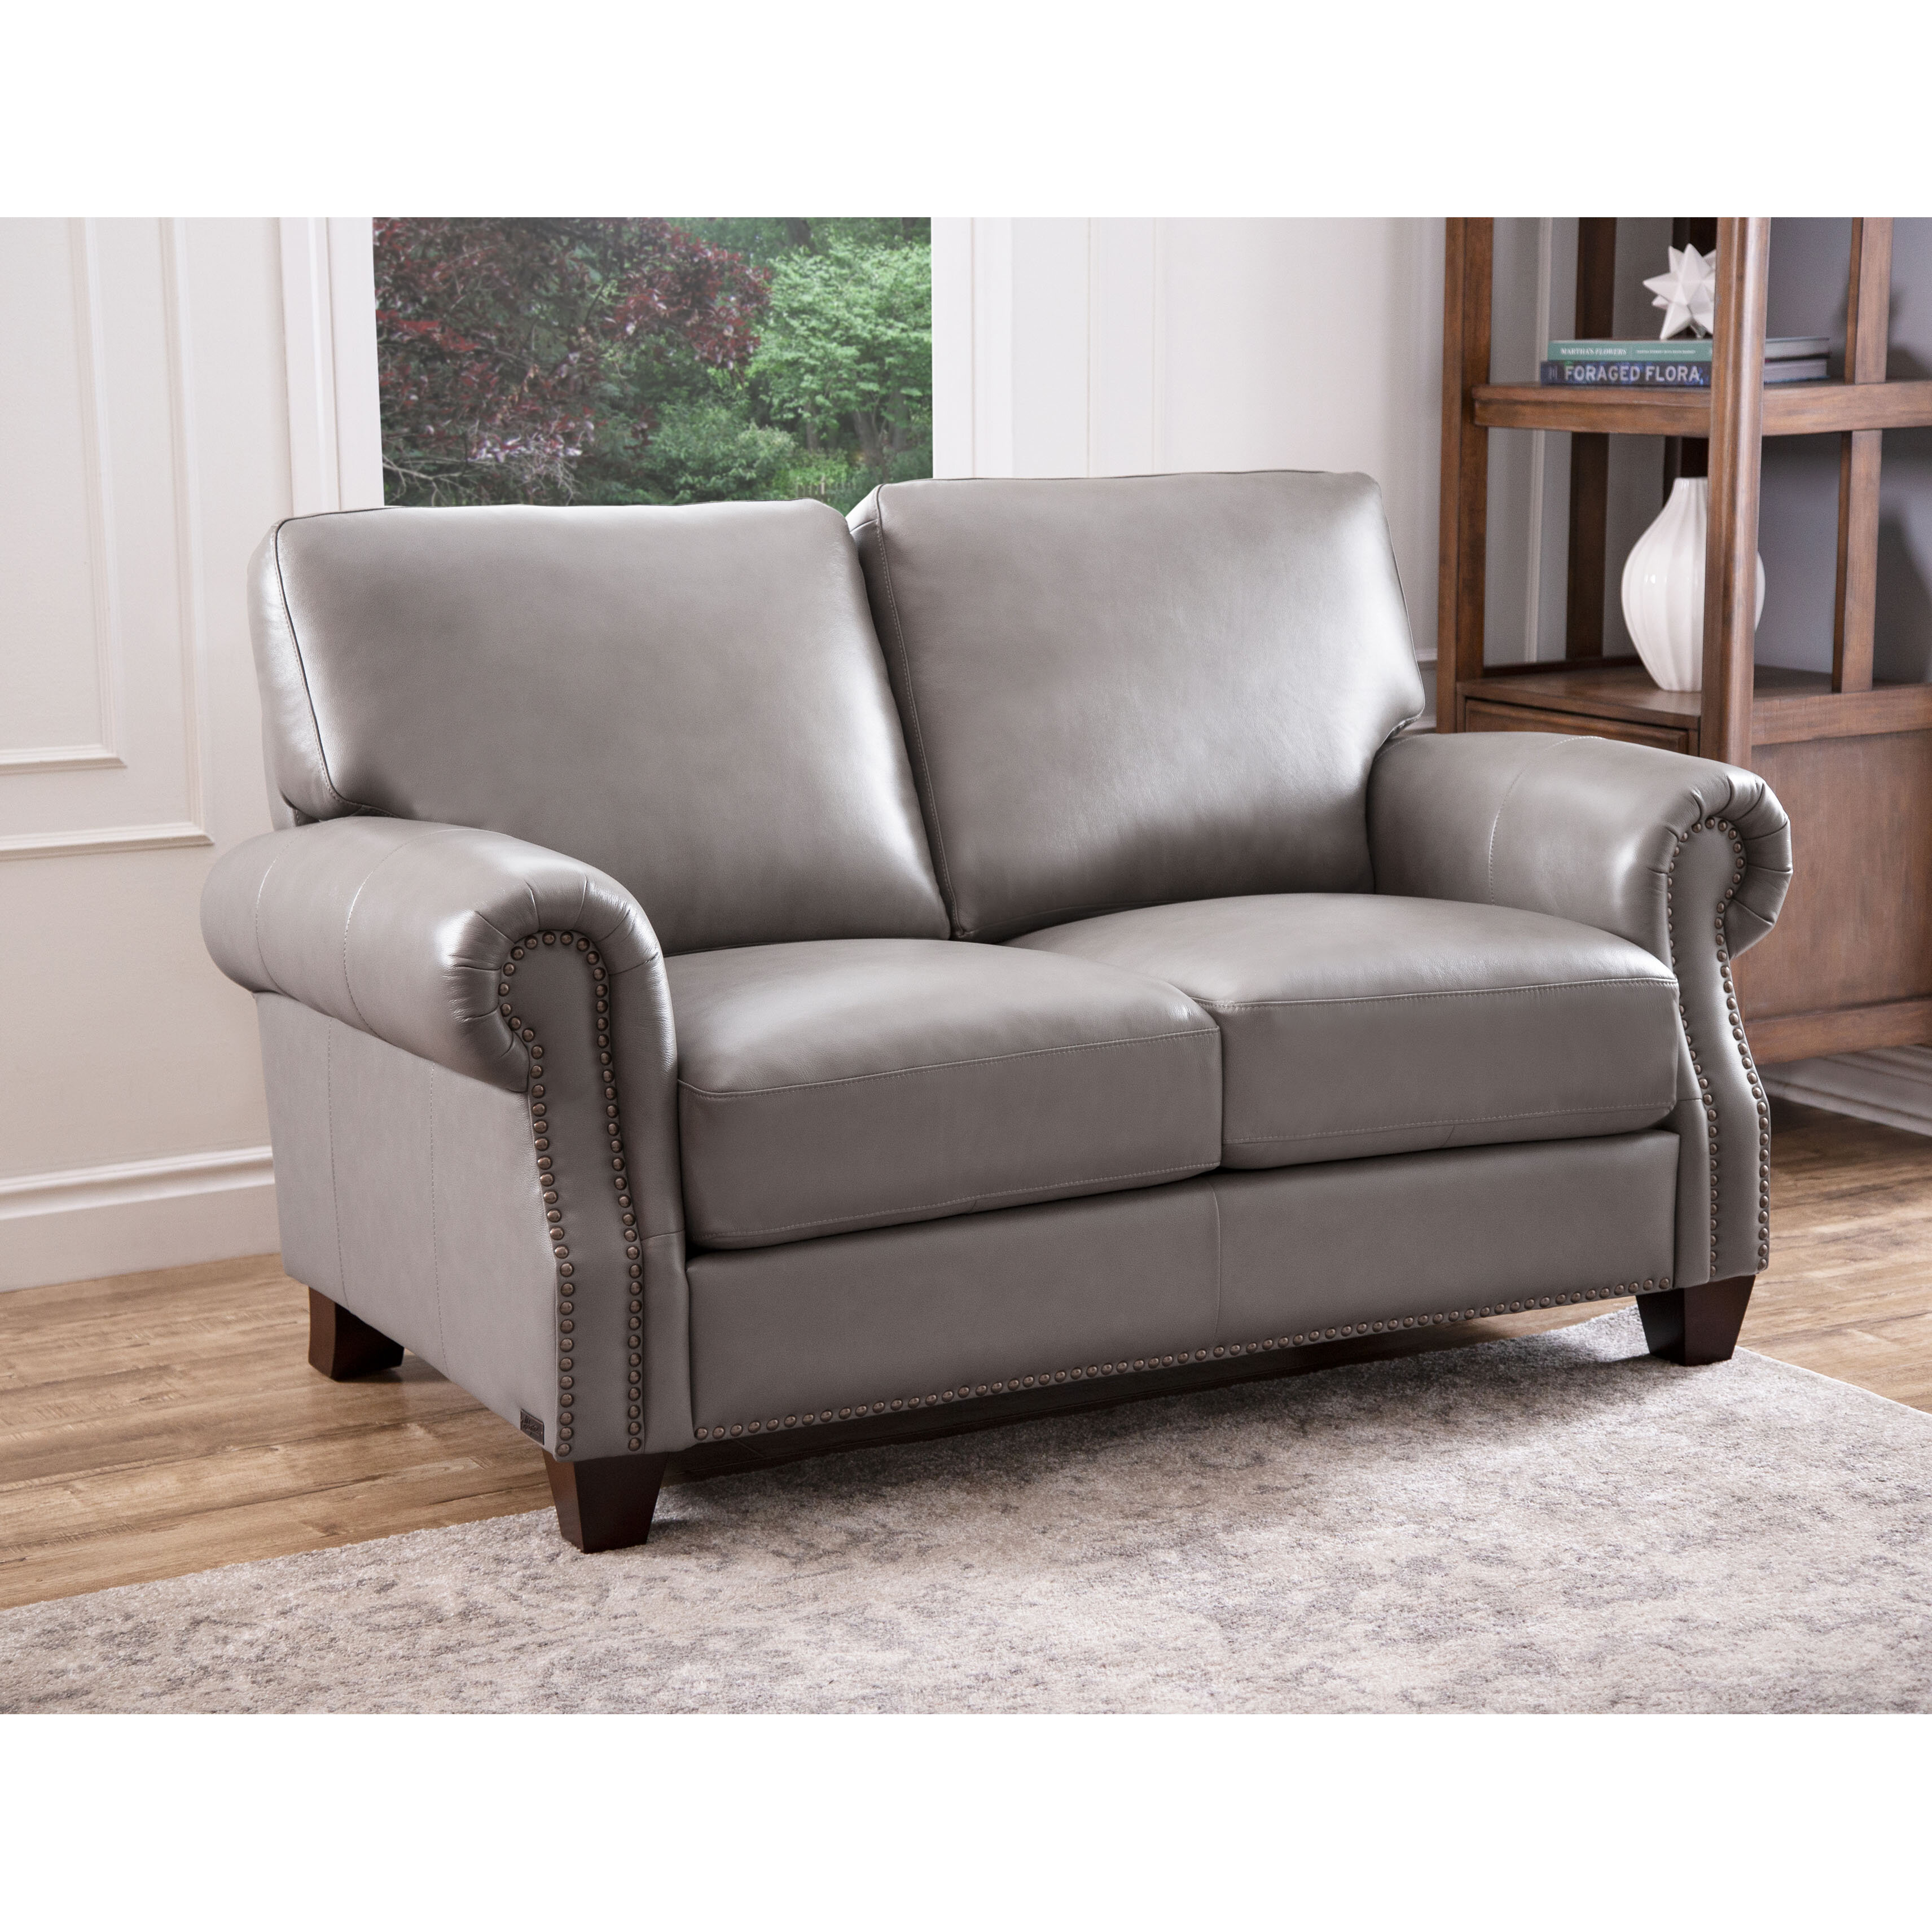 Brilliant Whipton Leather Loveseat Gmtry Best Dining Table And Chair Ideas Images Gmtryco